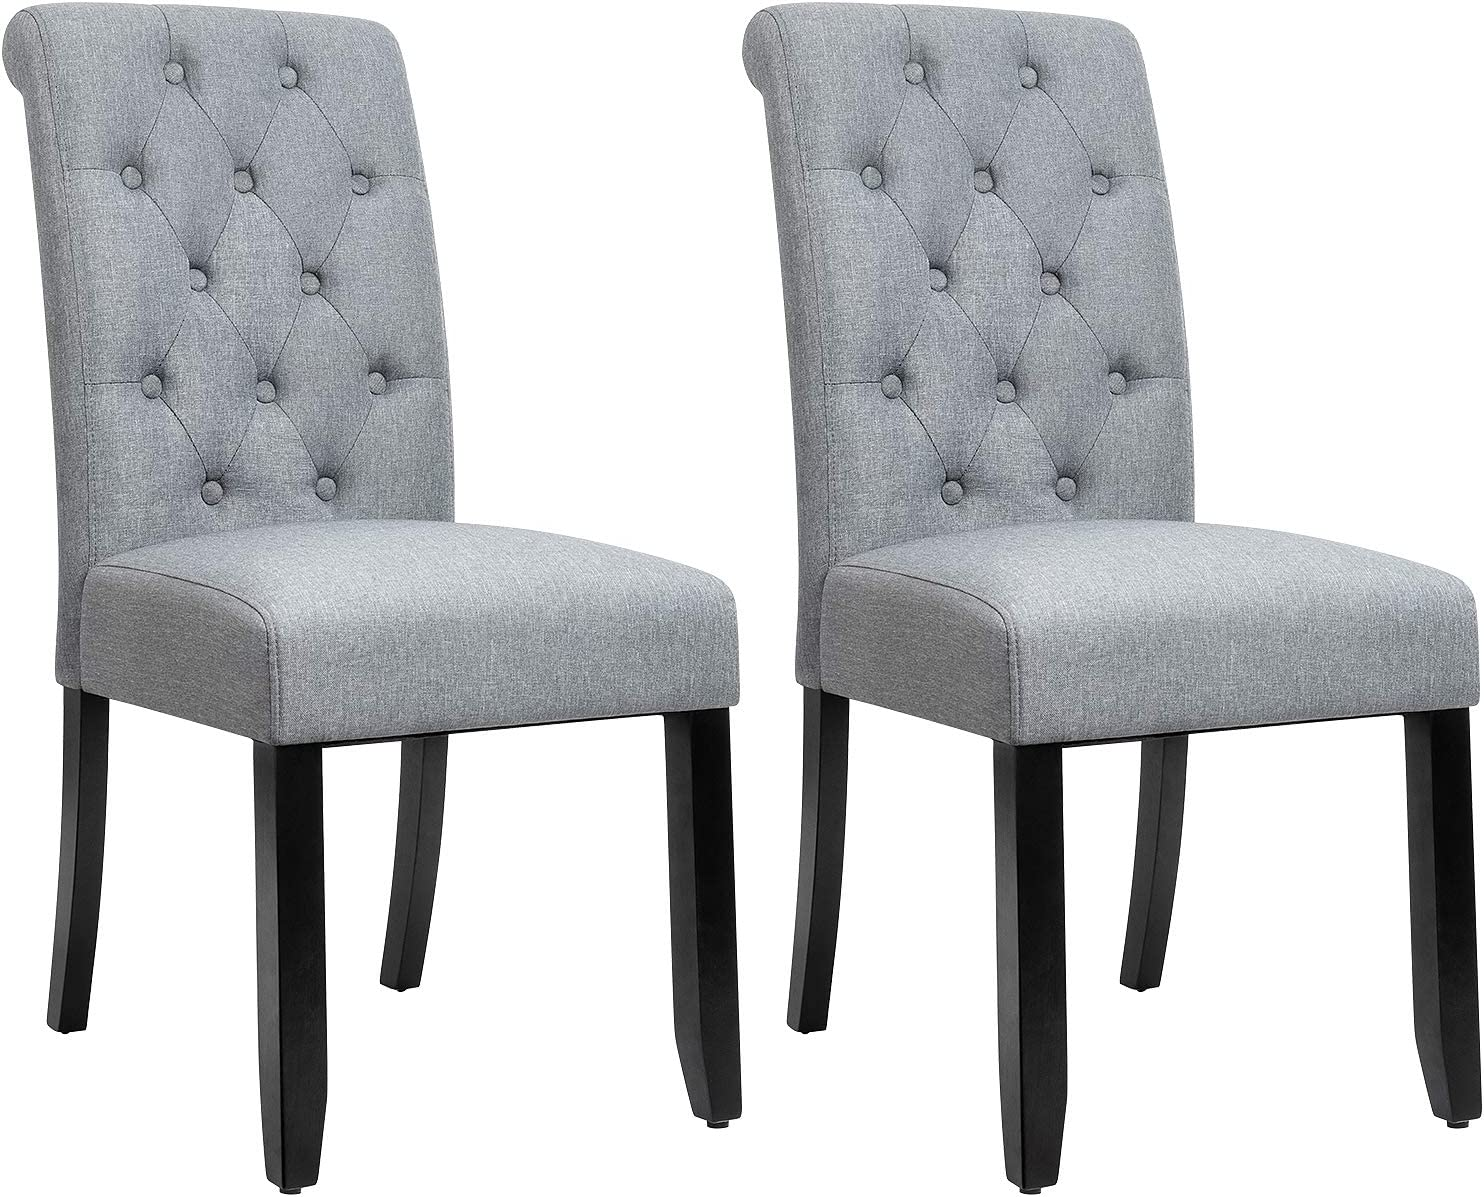 JUMMICO Dining Chair Fabric Tufted Upholstered Design Armless Chair with  Solid Wood Legs Tall Back Set of 3 (Grey)